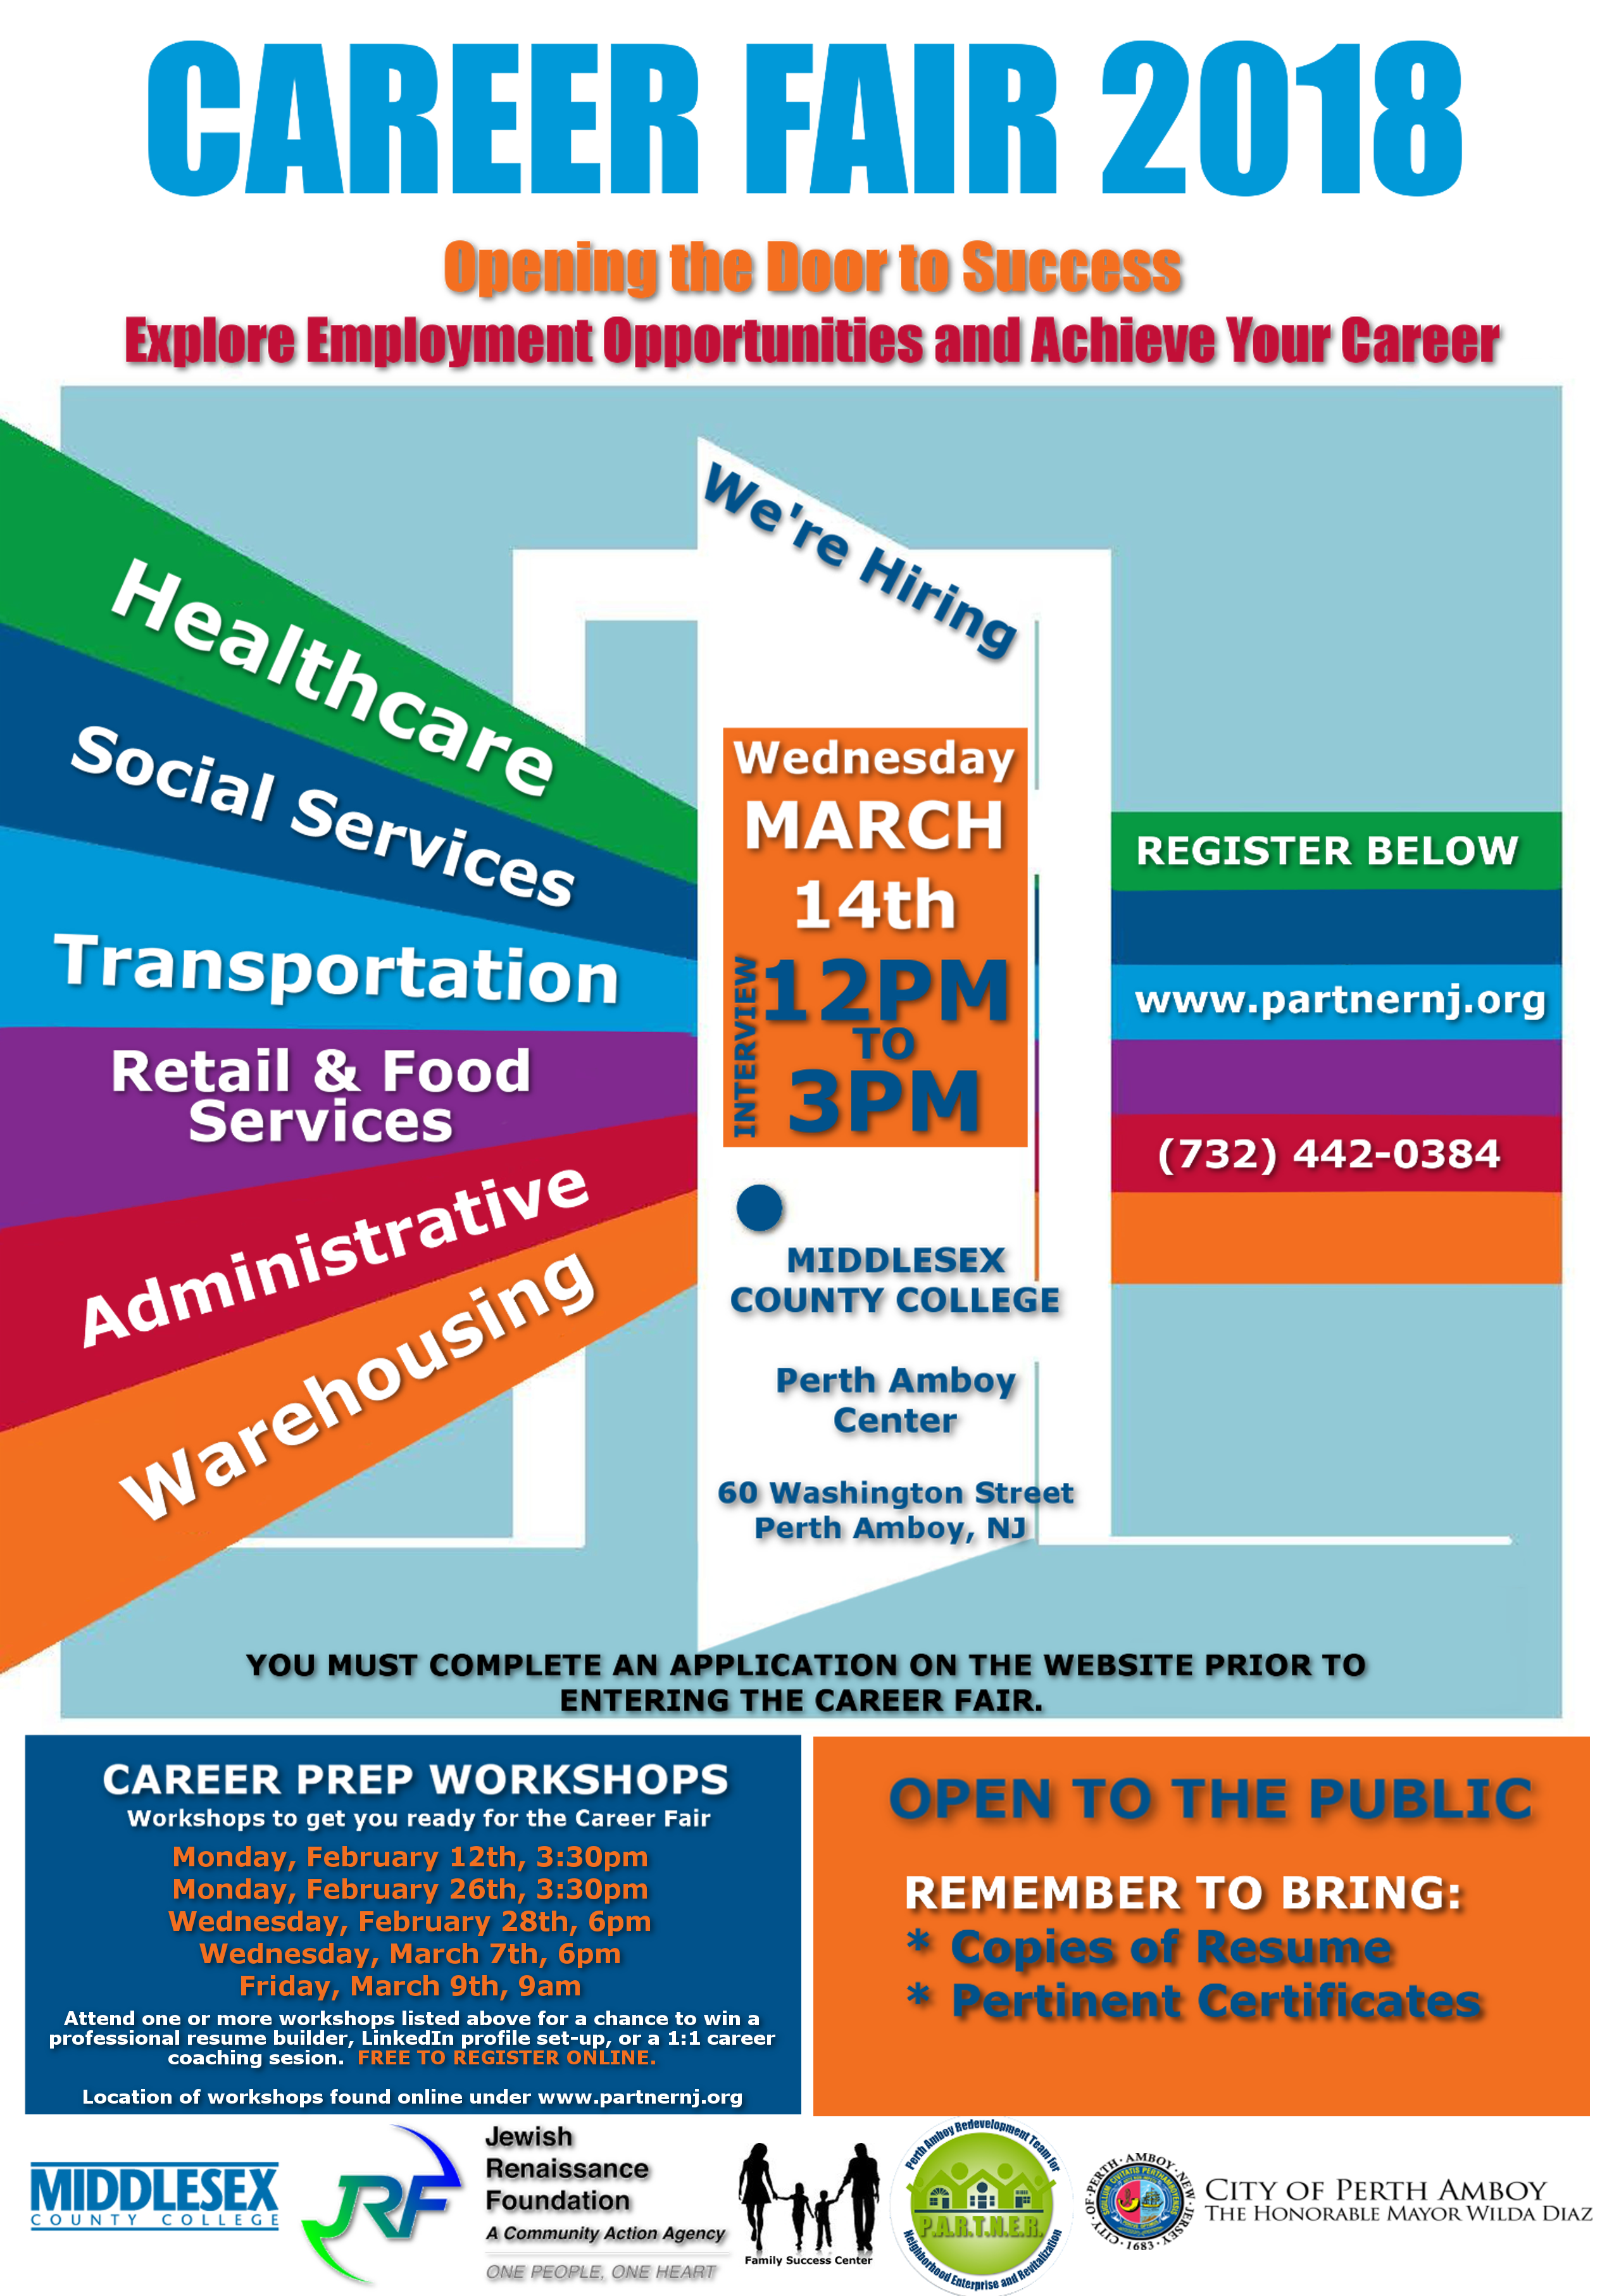 Jewish renaissance foundation what you can do event calendar 2018 career fair opening the door to success reheart Image collections